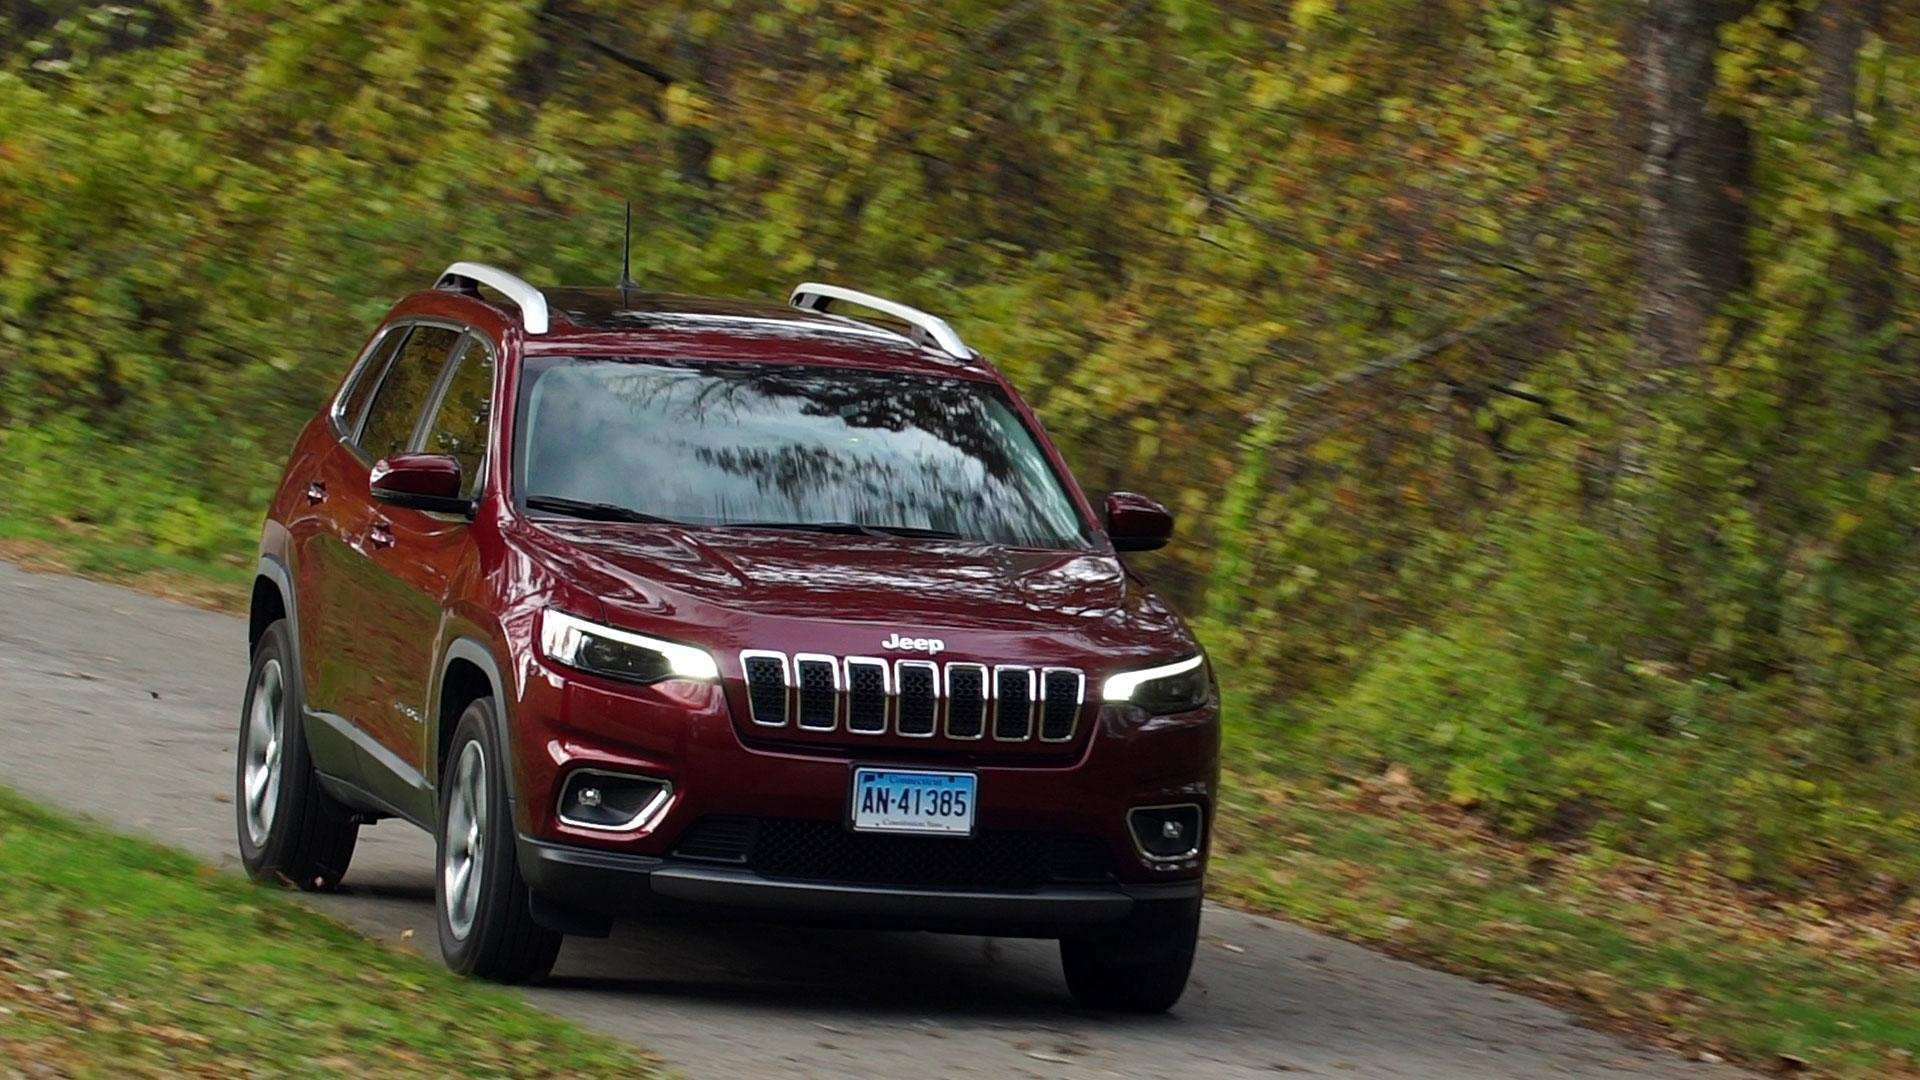 99 New 2020 Jeep Cherokee Towing Capacity Photos for 2020 Jeep Cherokee Towing Capacity